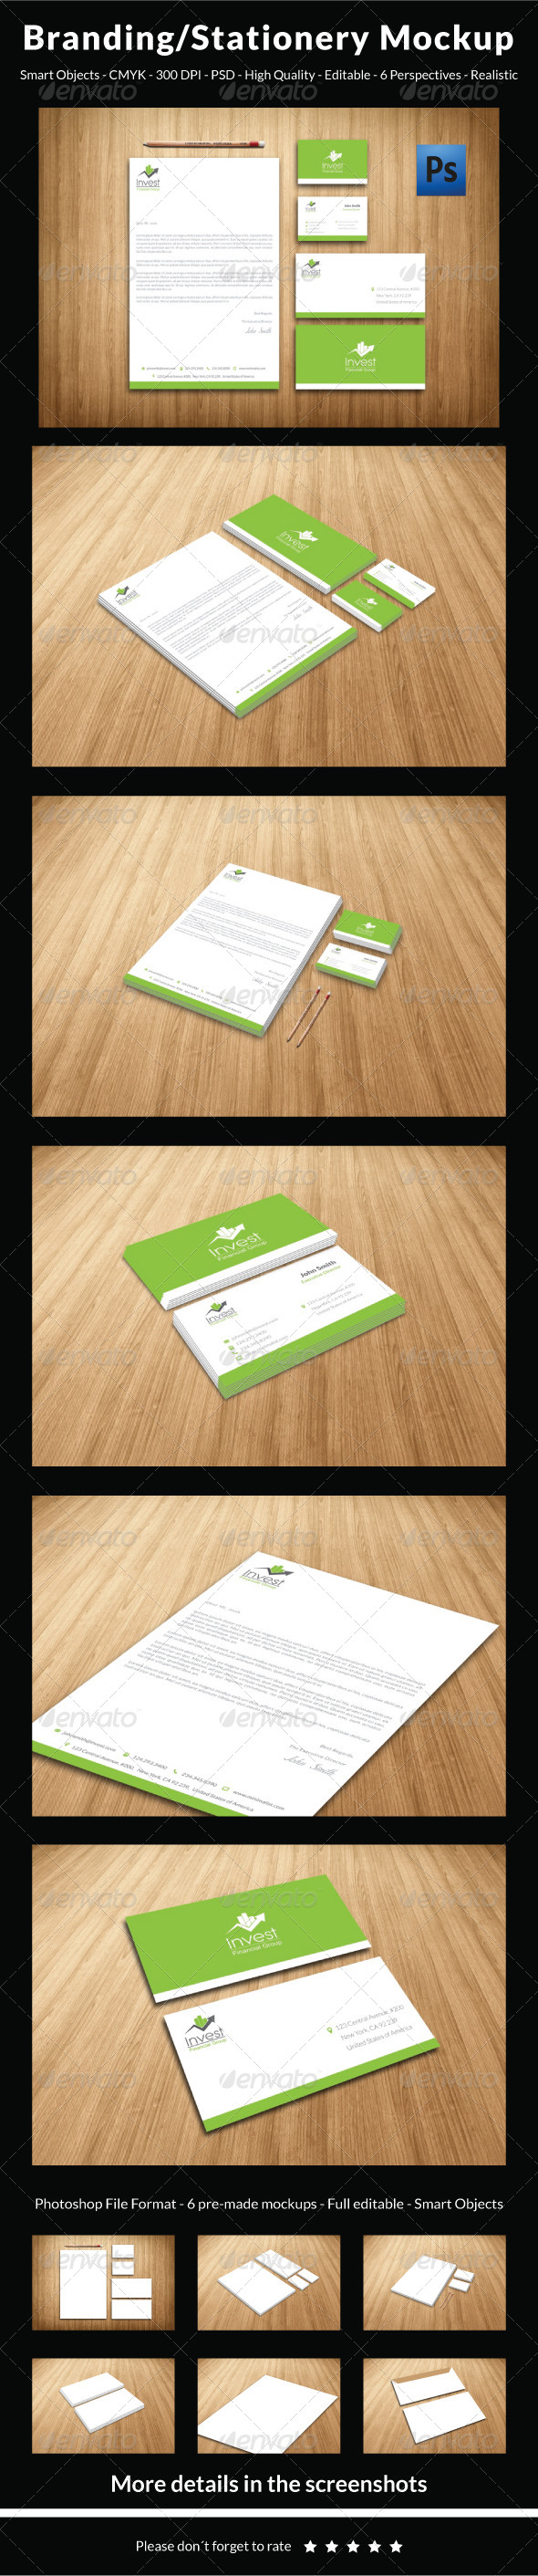 GraphicRiver Clean & Professional Branding Stationery Mockup 5881883